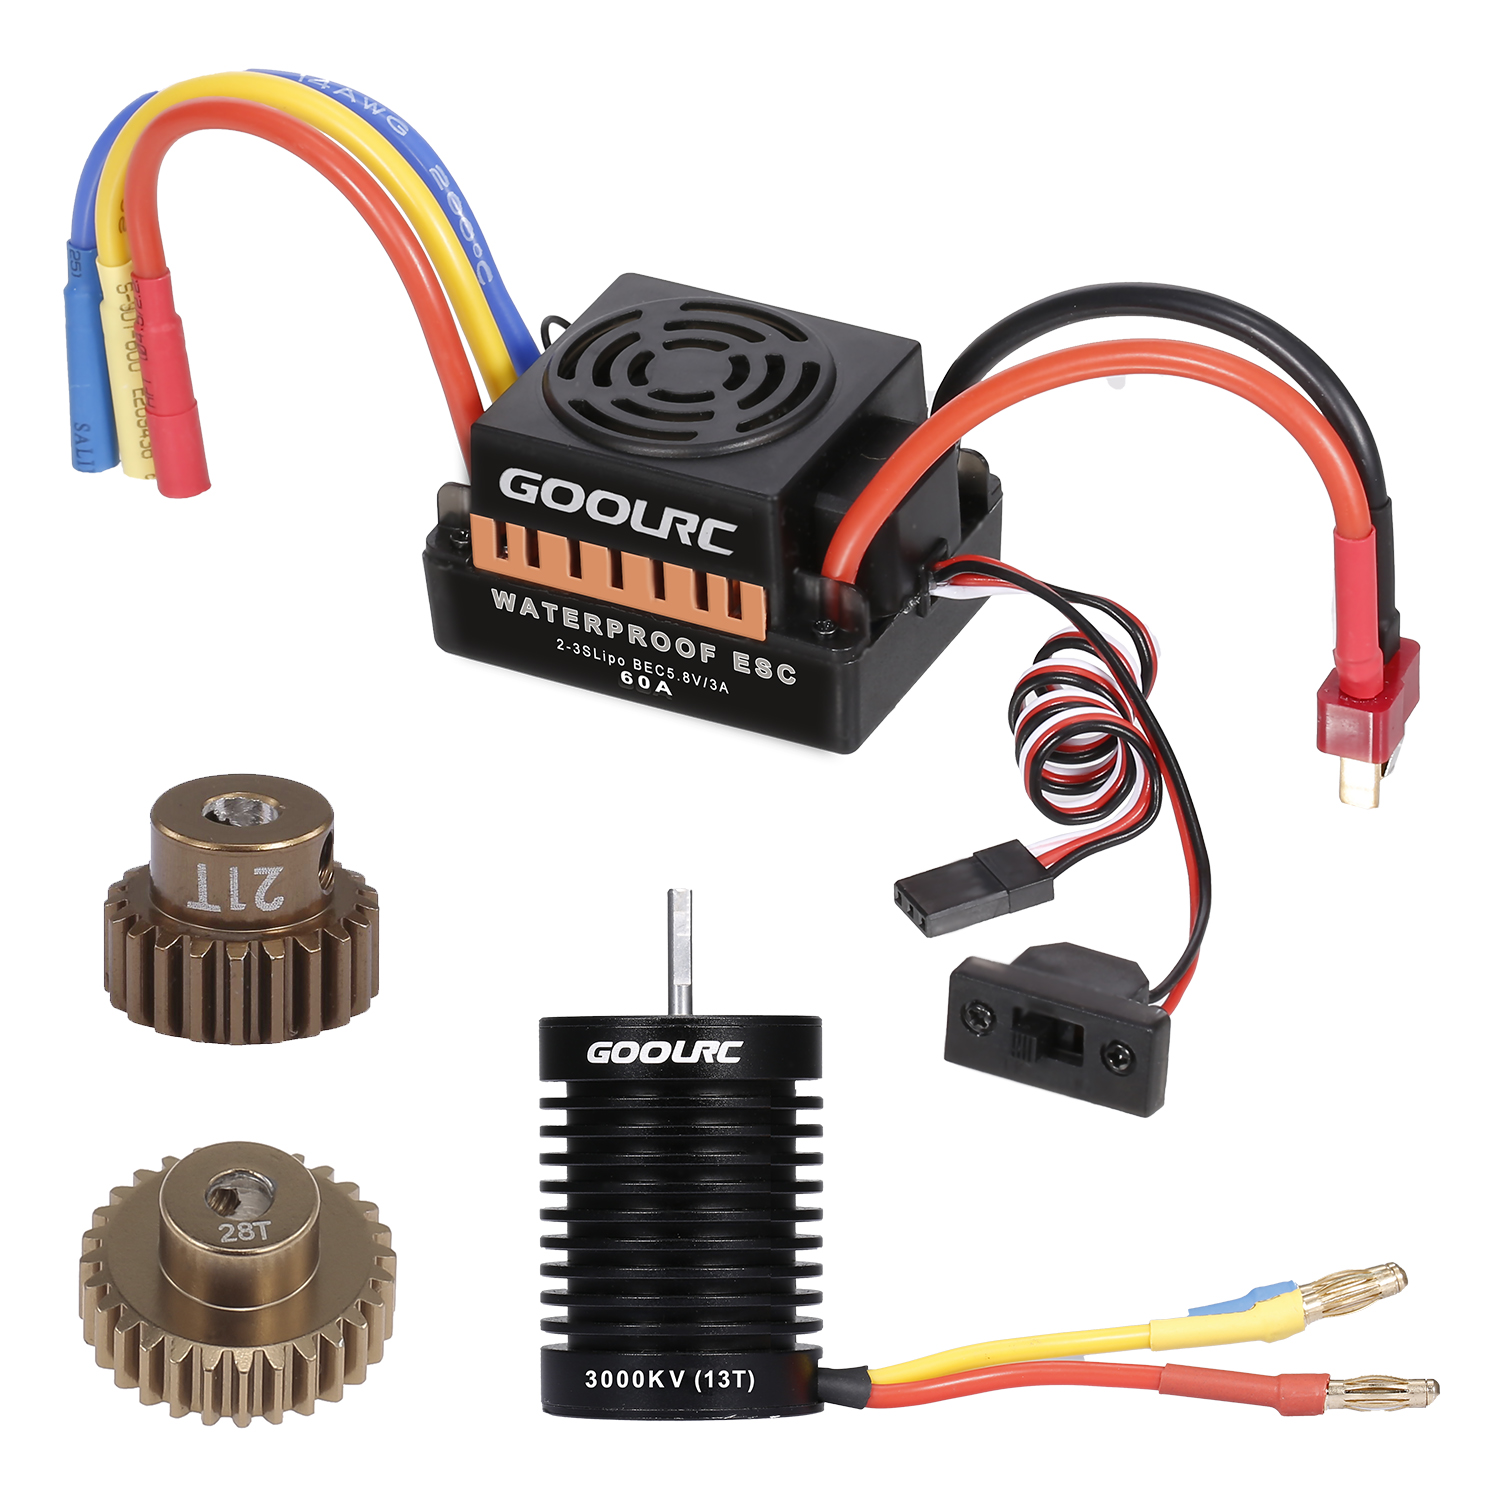 <font><b>GoolRC</b></font> 13T Motor <font><b>3650</b></font> 3000KV Brushless Motor 60A ESC 5.8V/3A BEC 21T Gear 28T Gear Combo for 1/10 RC Car Crawler Accessories image